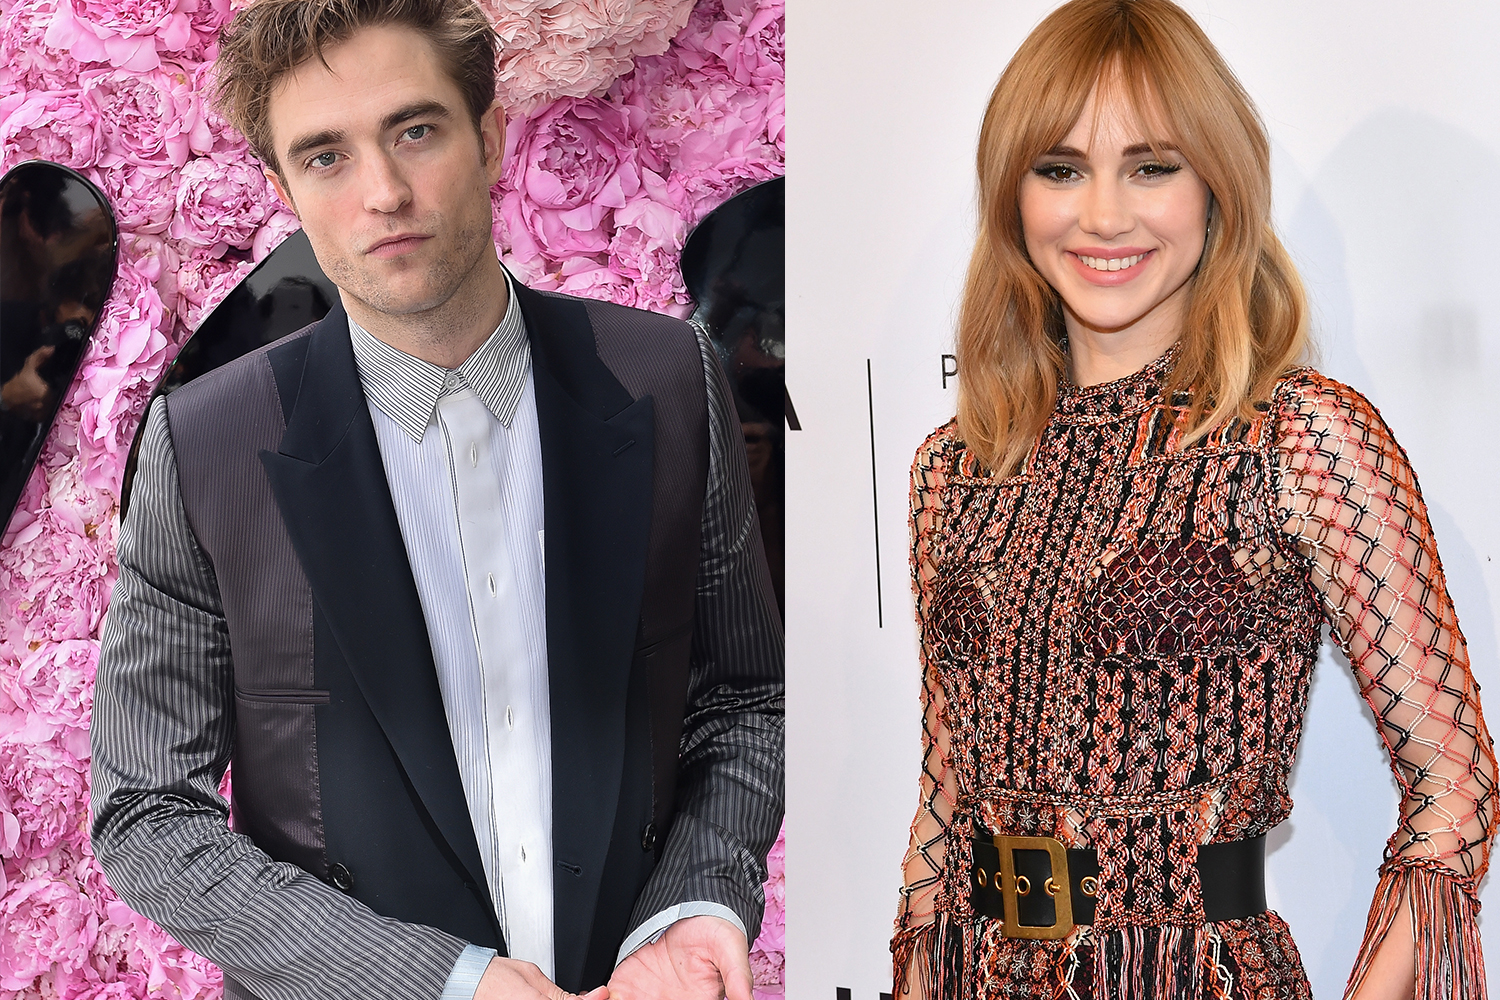 Hvem er dating robert pattinson